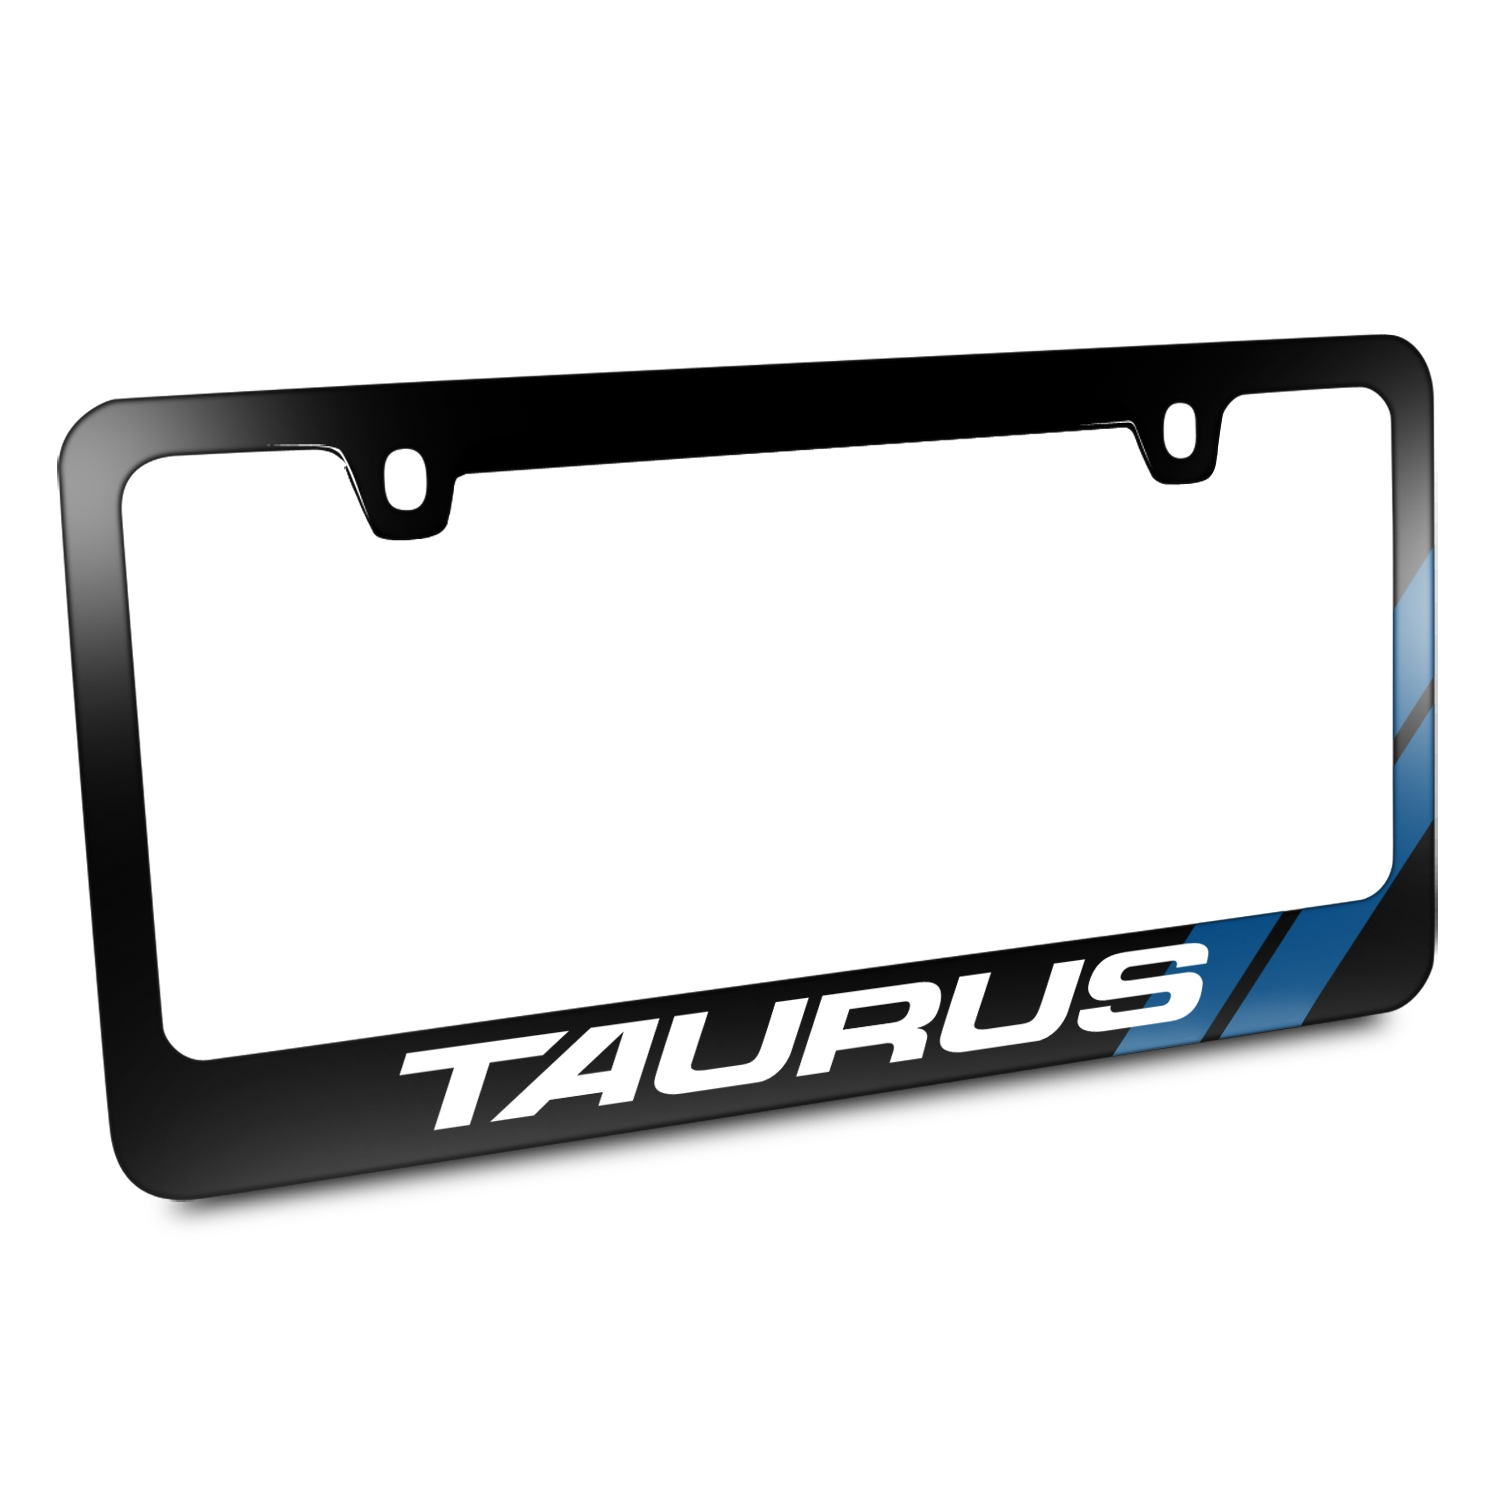 Ford Taurus Blue Sports Stripe Black Metal License Plate Frame